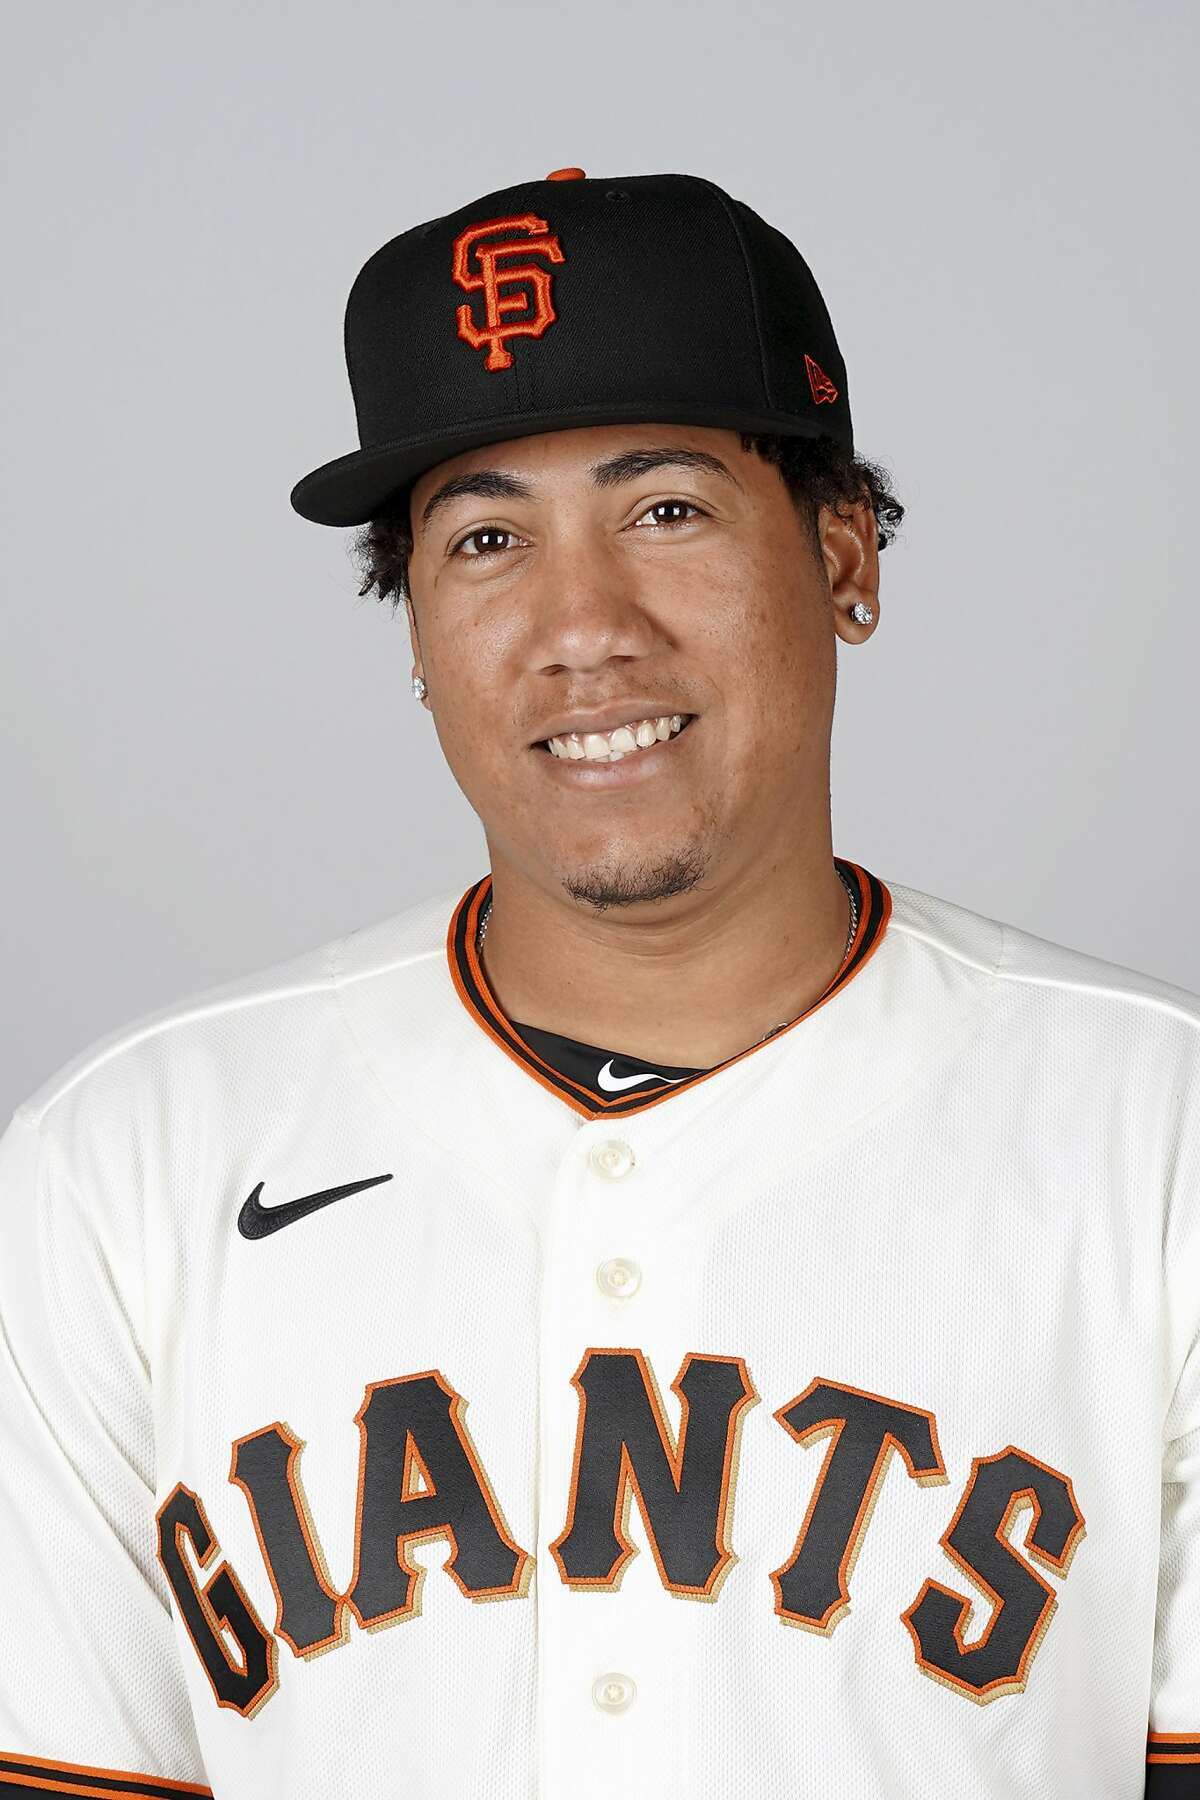 The Giants acquired Dedniel Núñez from the Mets in the Rule 5 draft.